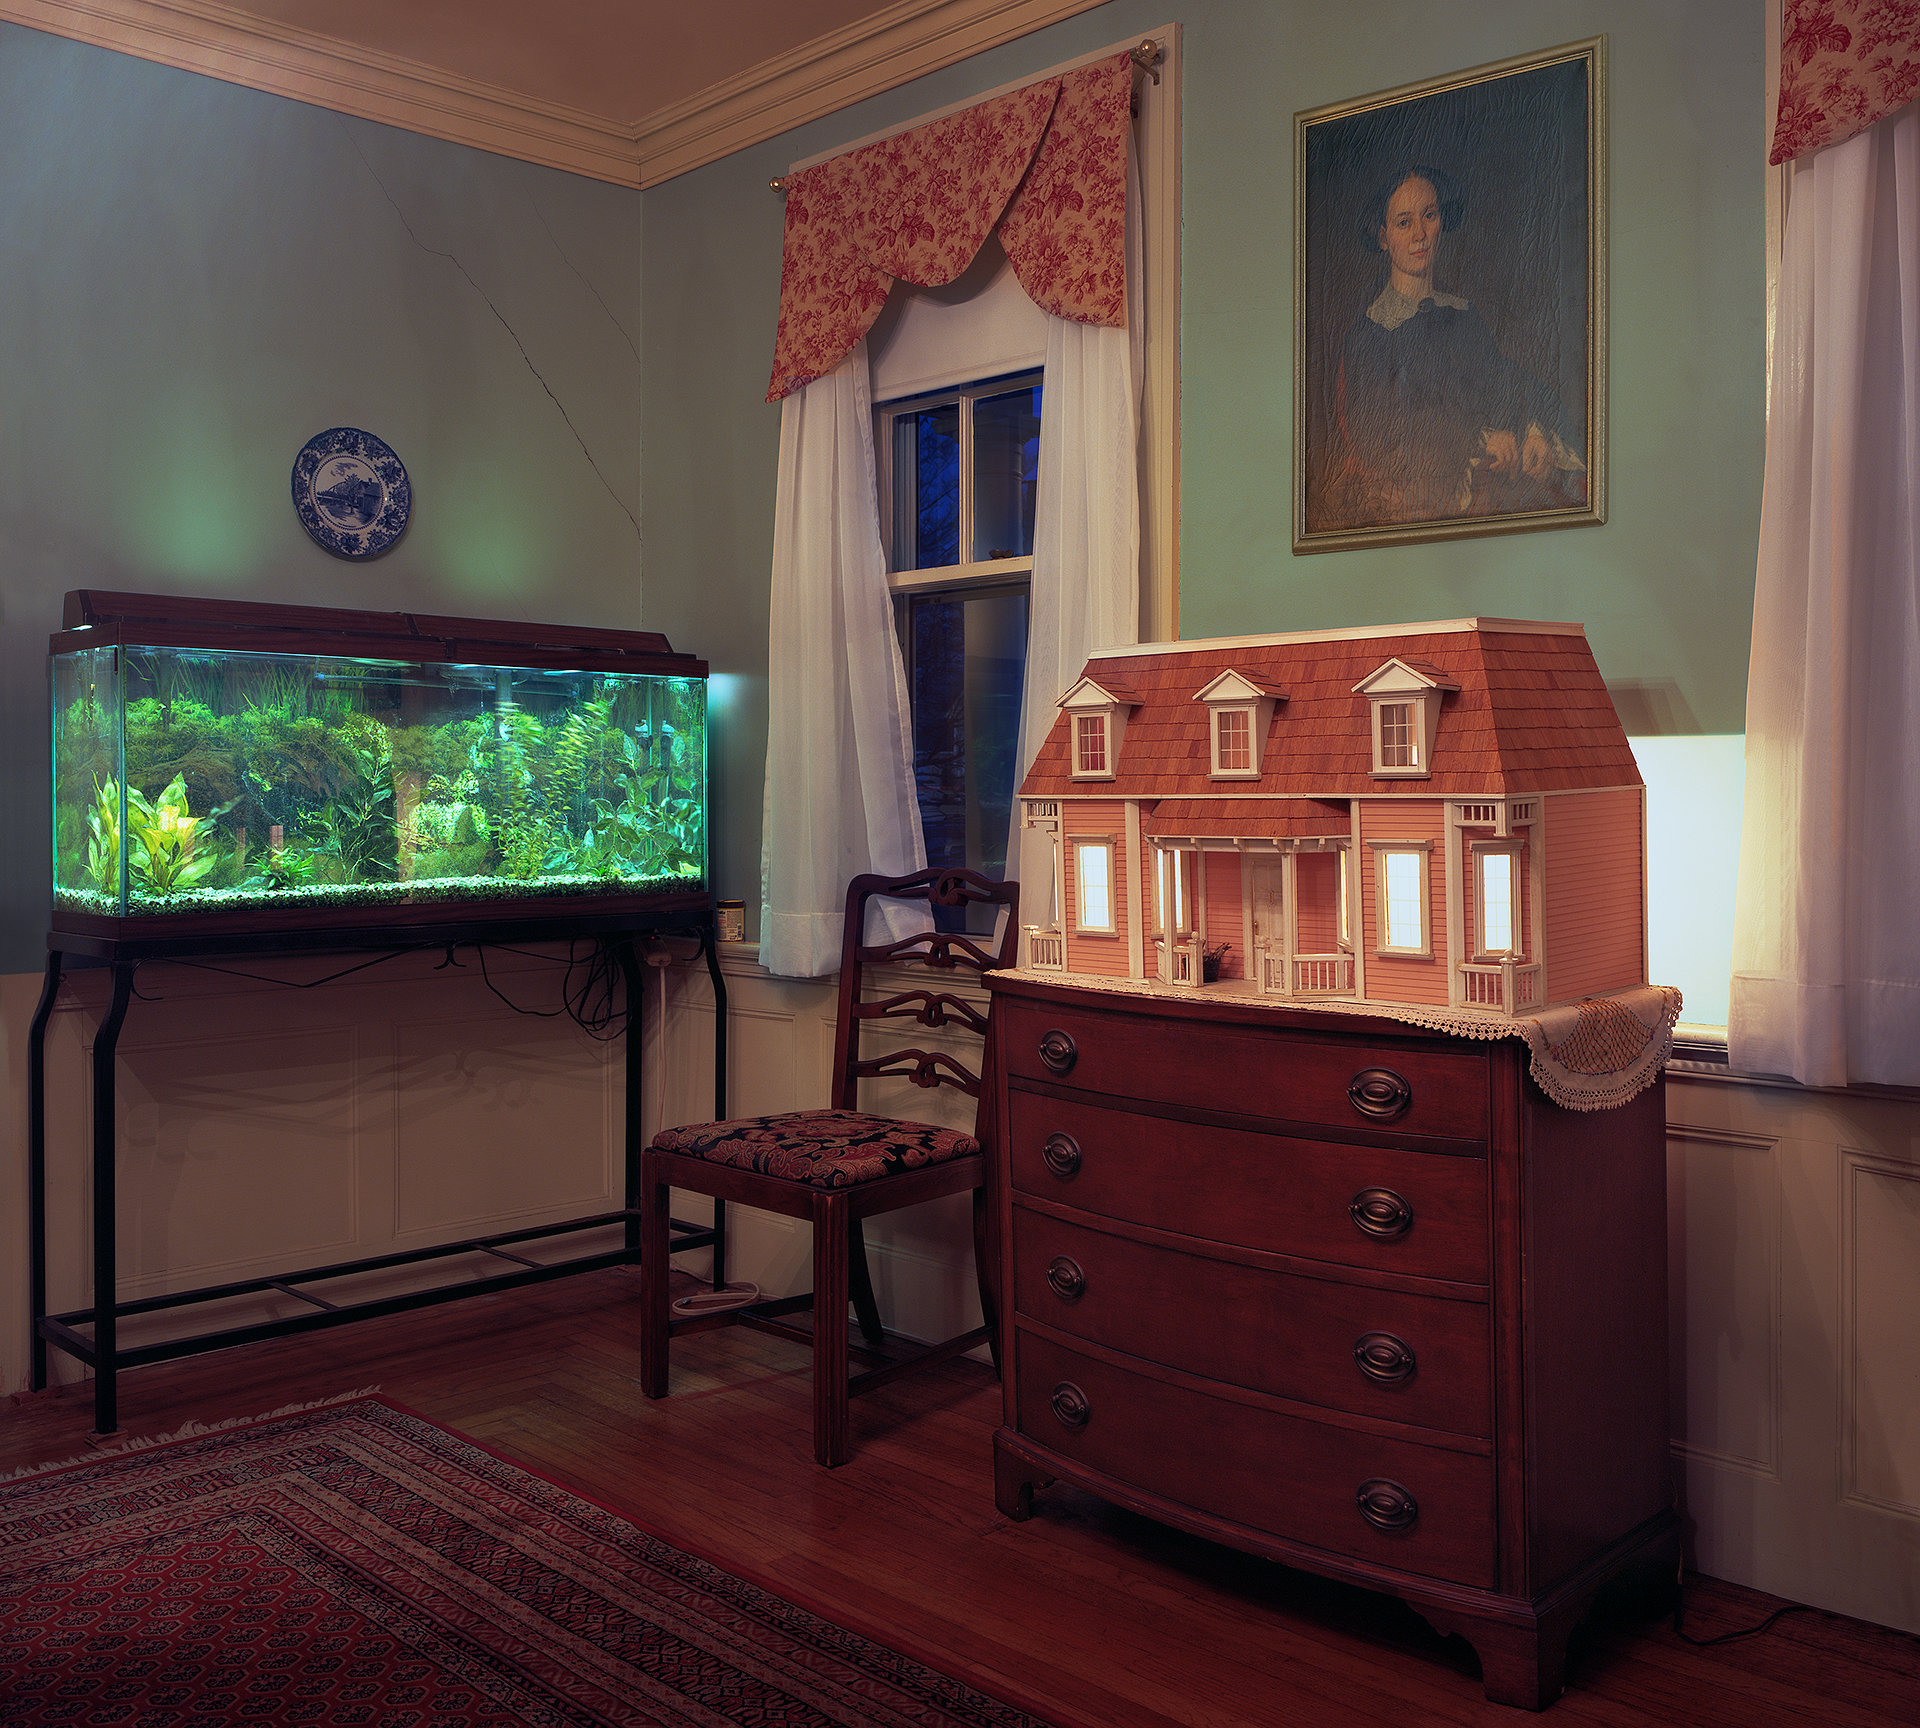 Aquarium and dollhouse, 2016